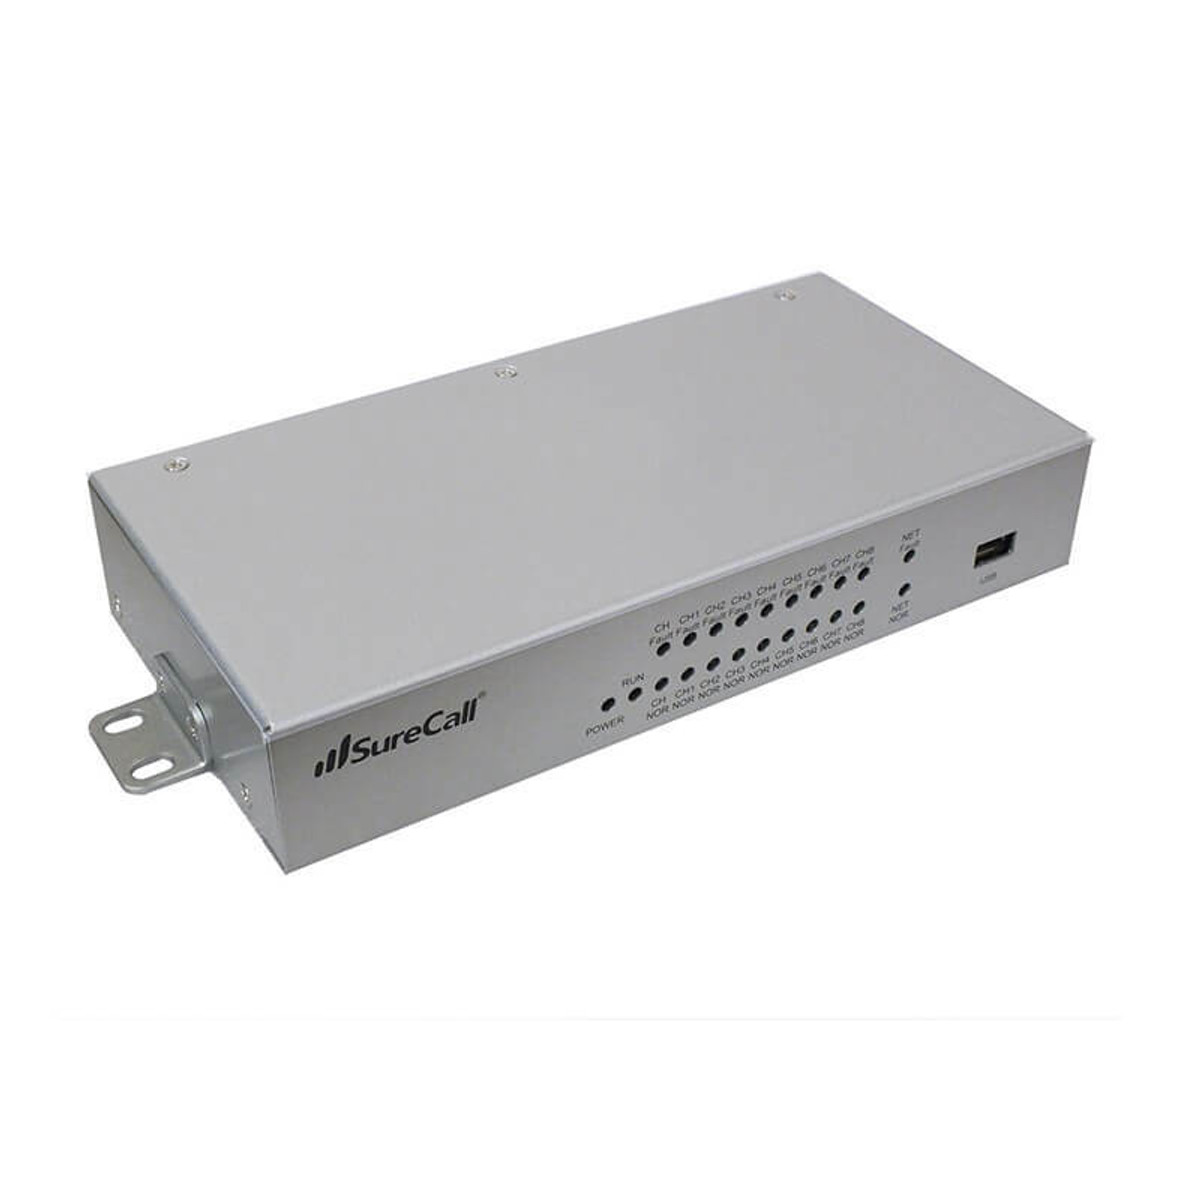 SureCall SureCall Sentry Remote Monitoring and Control System for Fusion5s